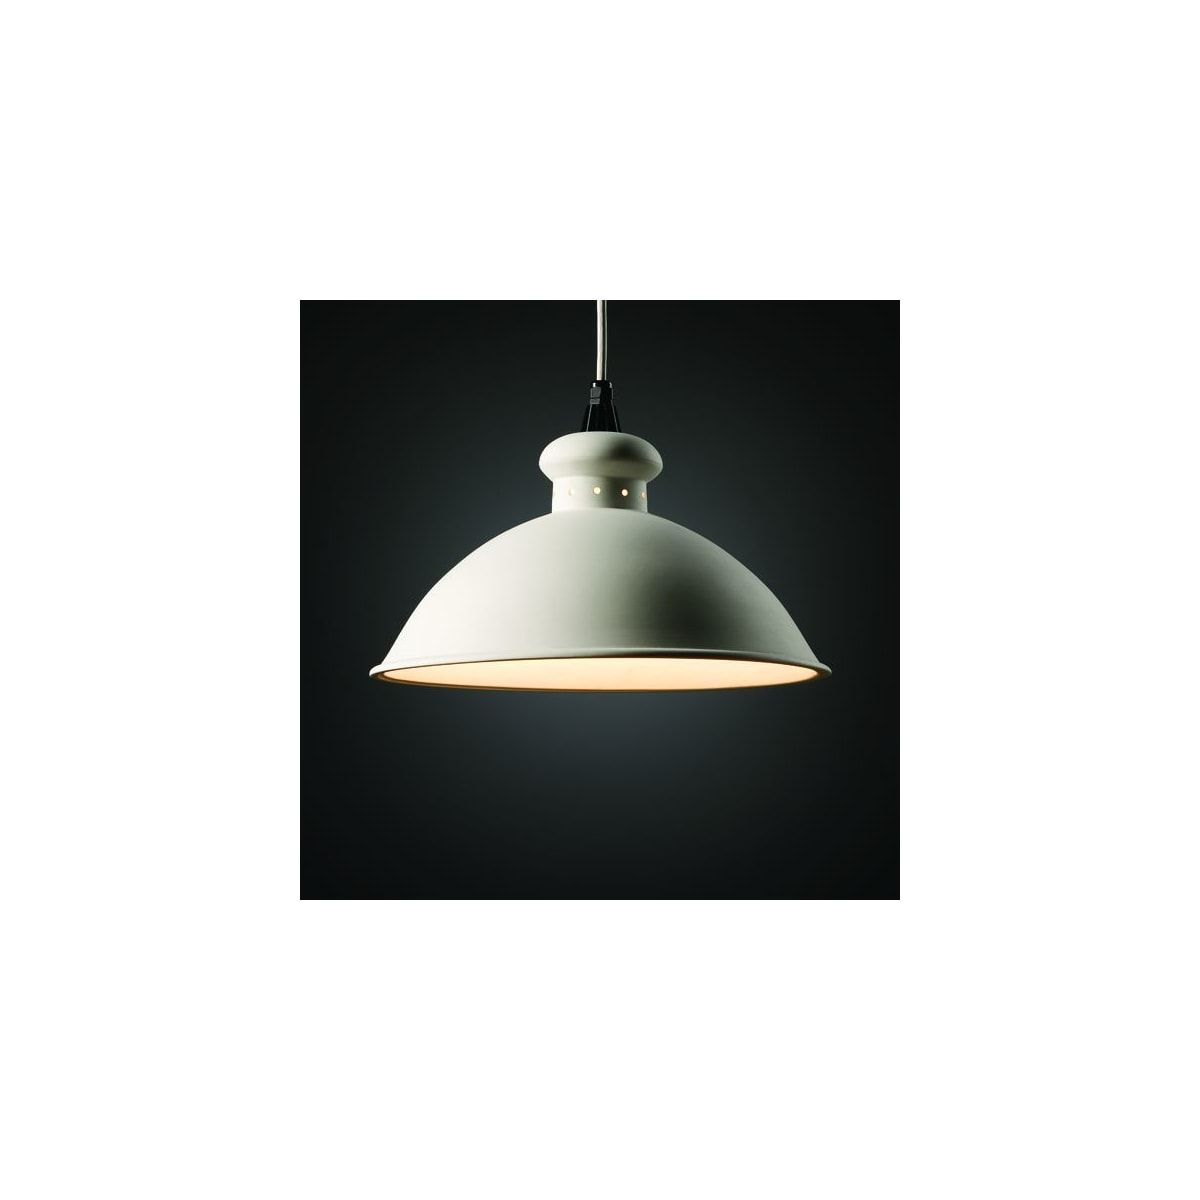 Justice Design Group Cer 6300 Bis Bisque Single Light 14 75 Interior Oriel Pendant Rated For Dry Locations From The Ceramic Collection Lightingdirect Com Justice Design Contemporary End Tables Justice Design Group